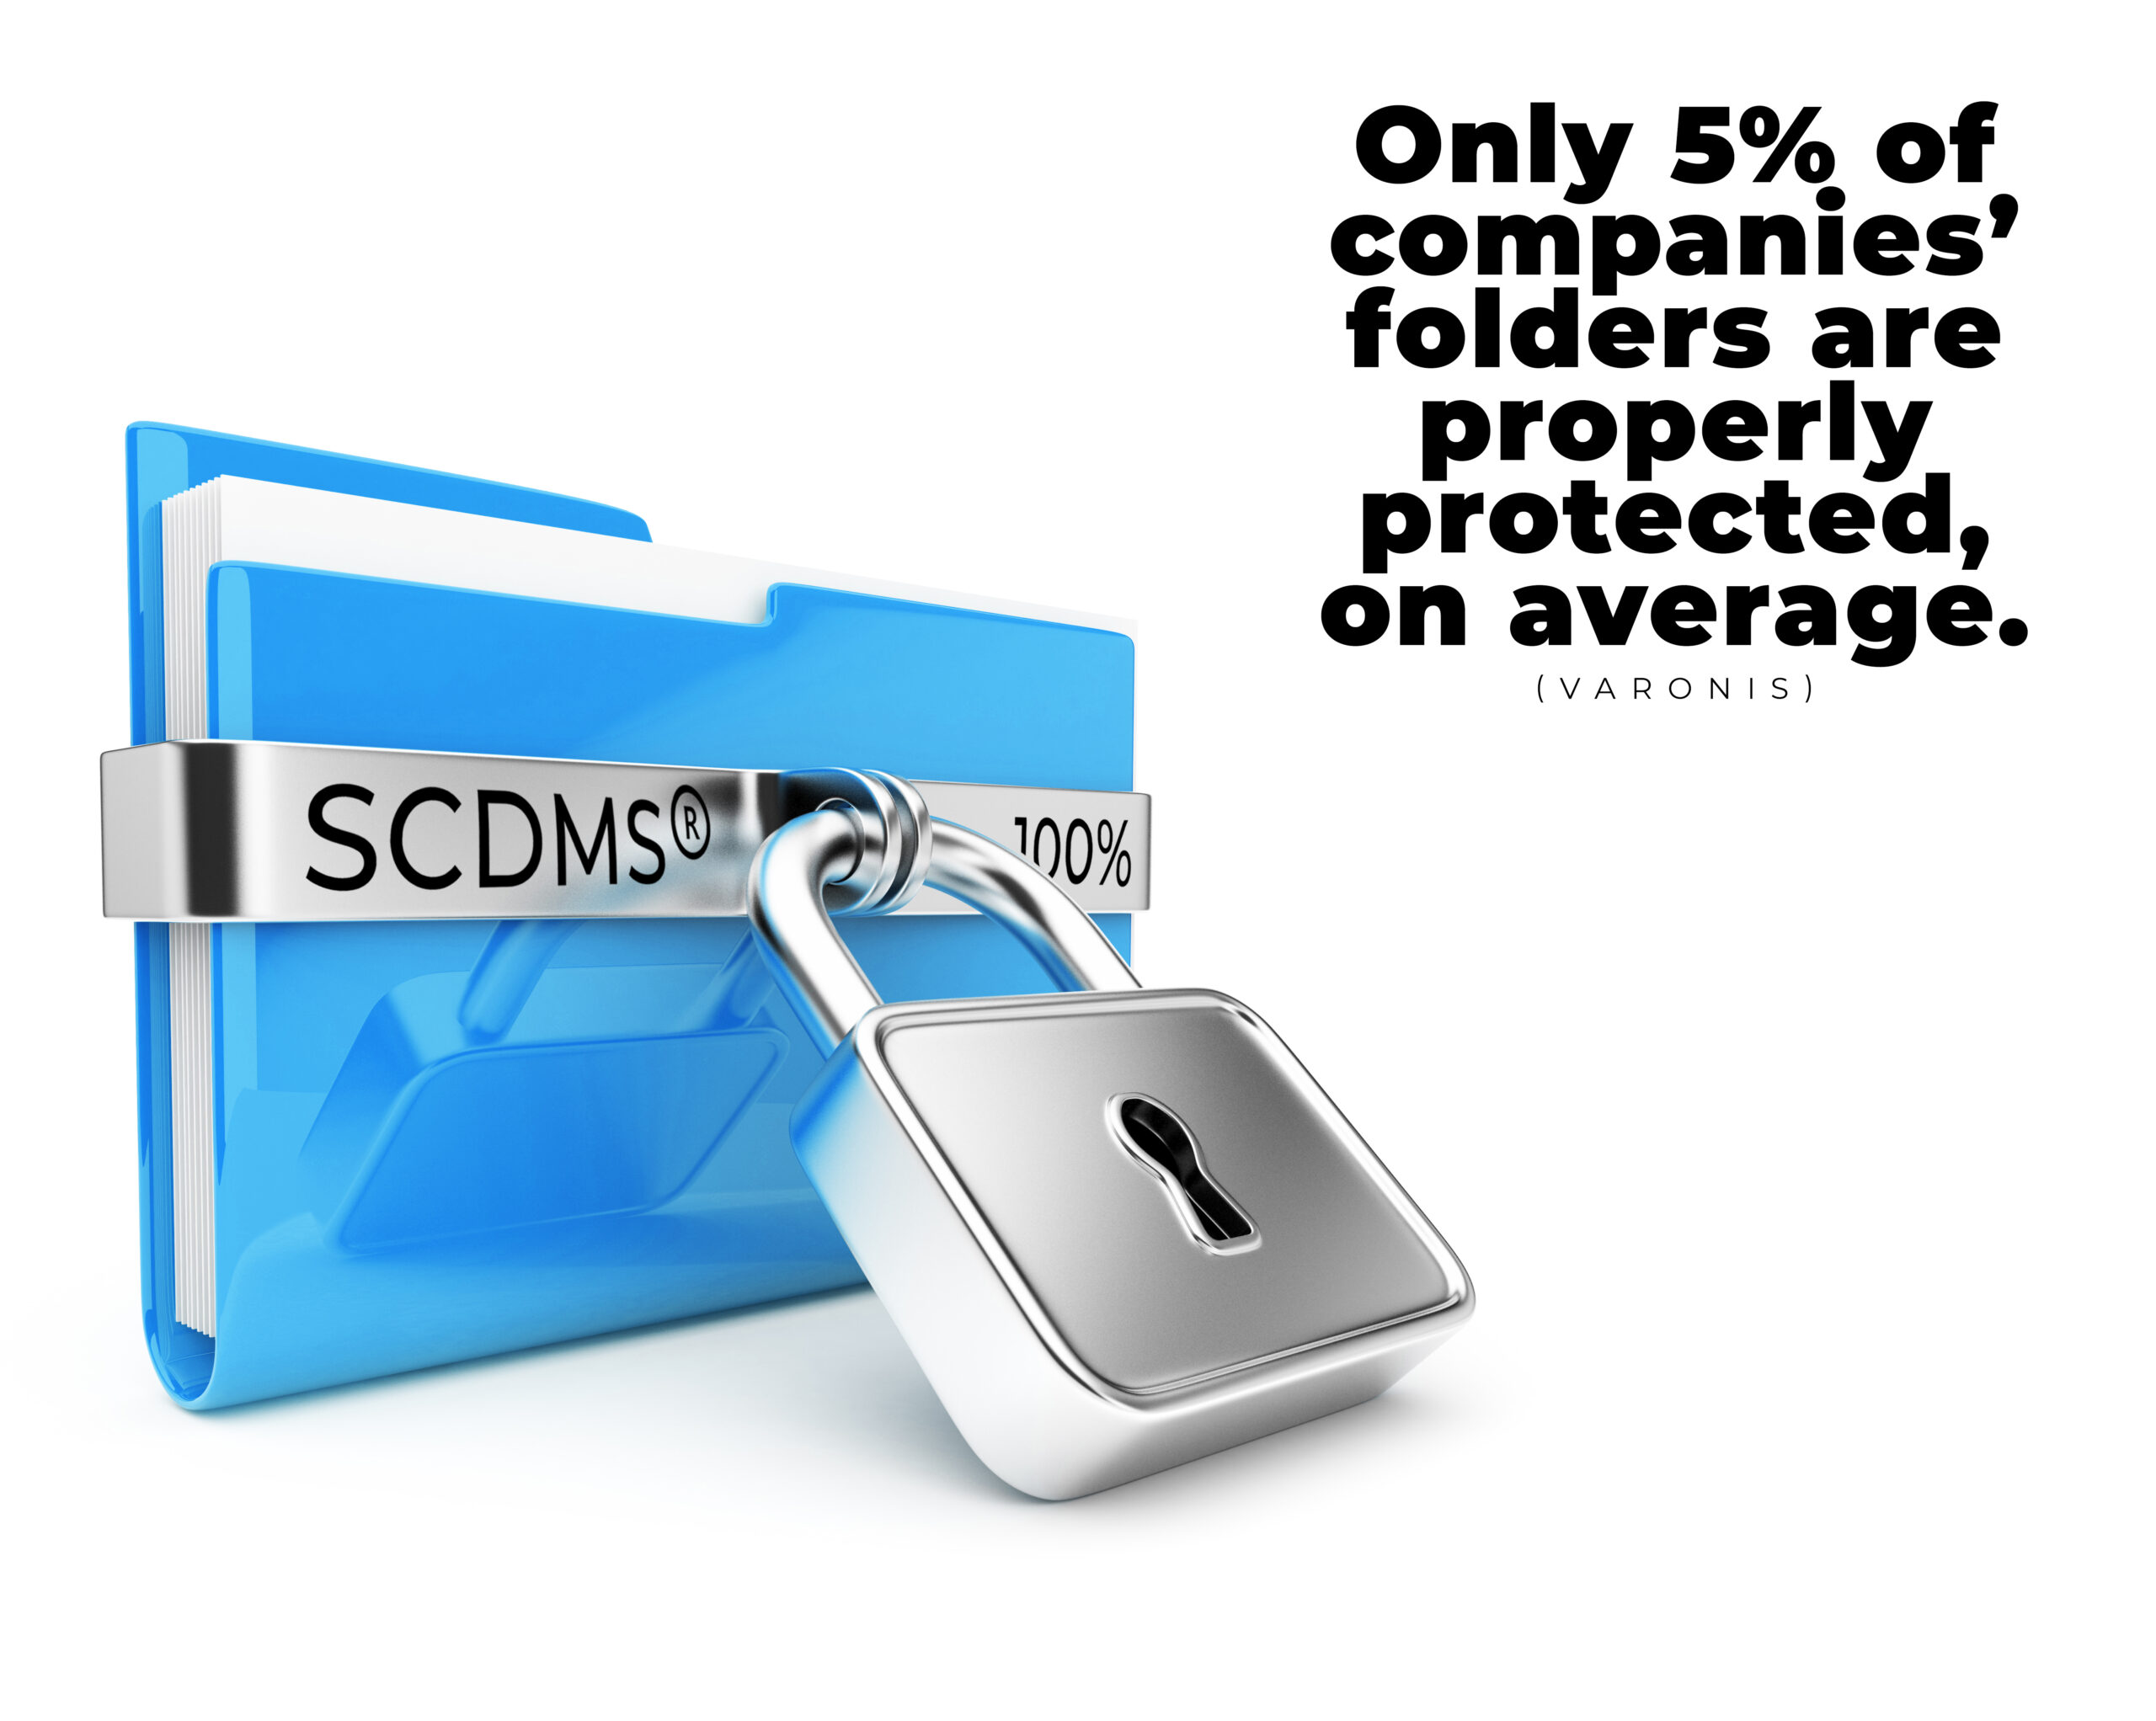 scdms folder document security